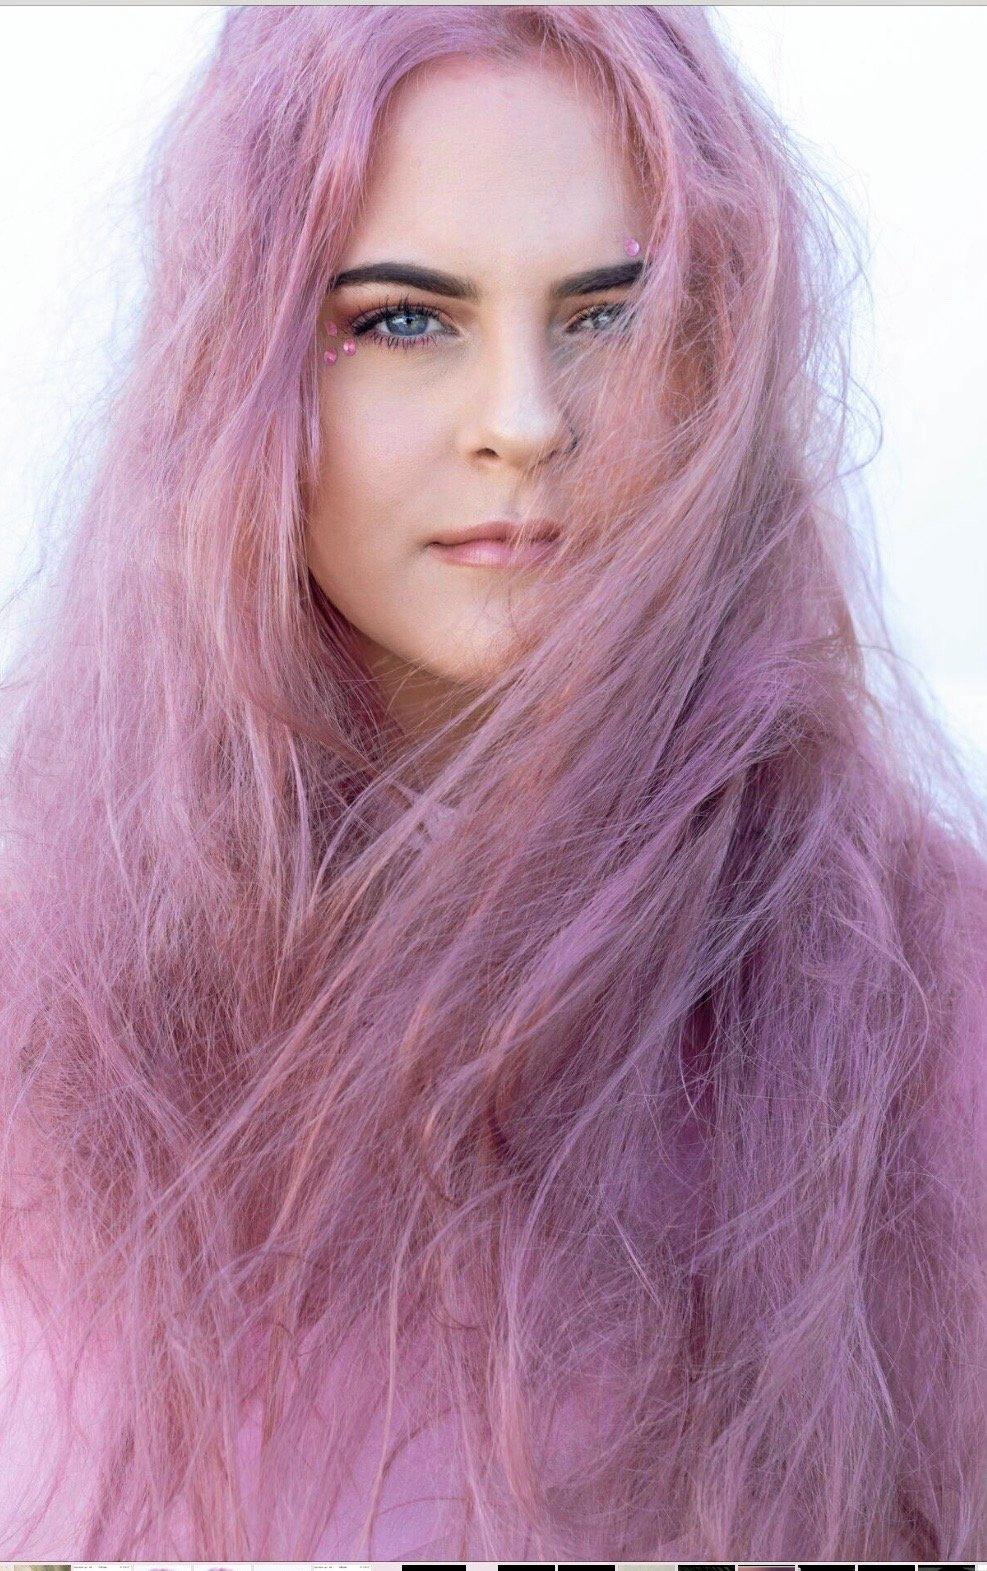 Deb Ford's model Yana Holmes with her 'Candy Floss' colour.